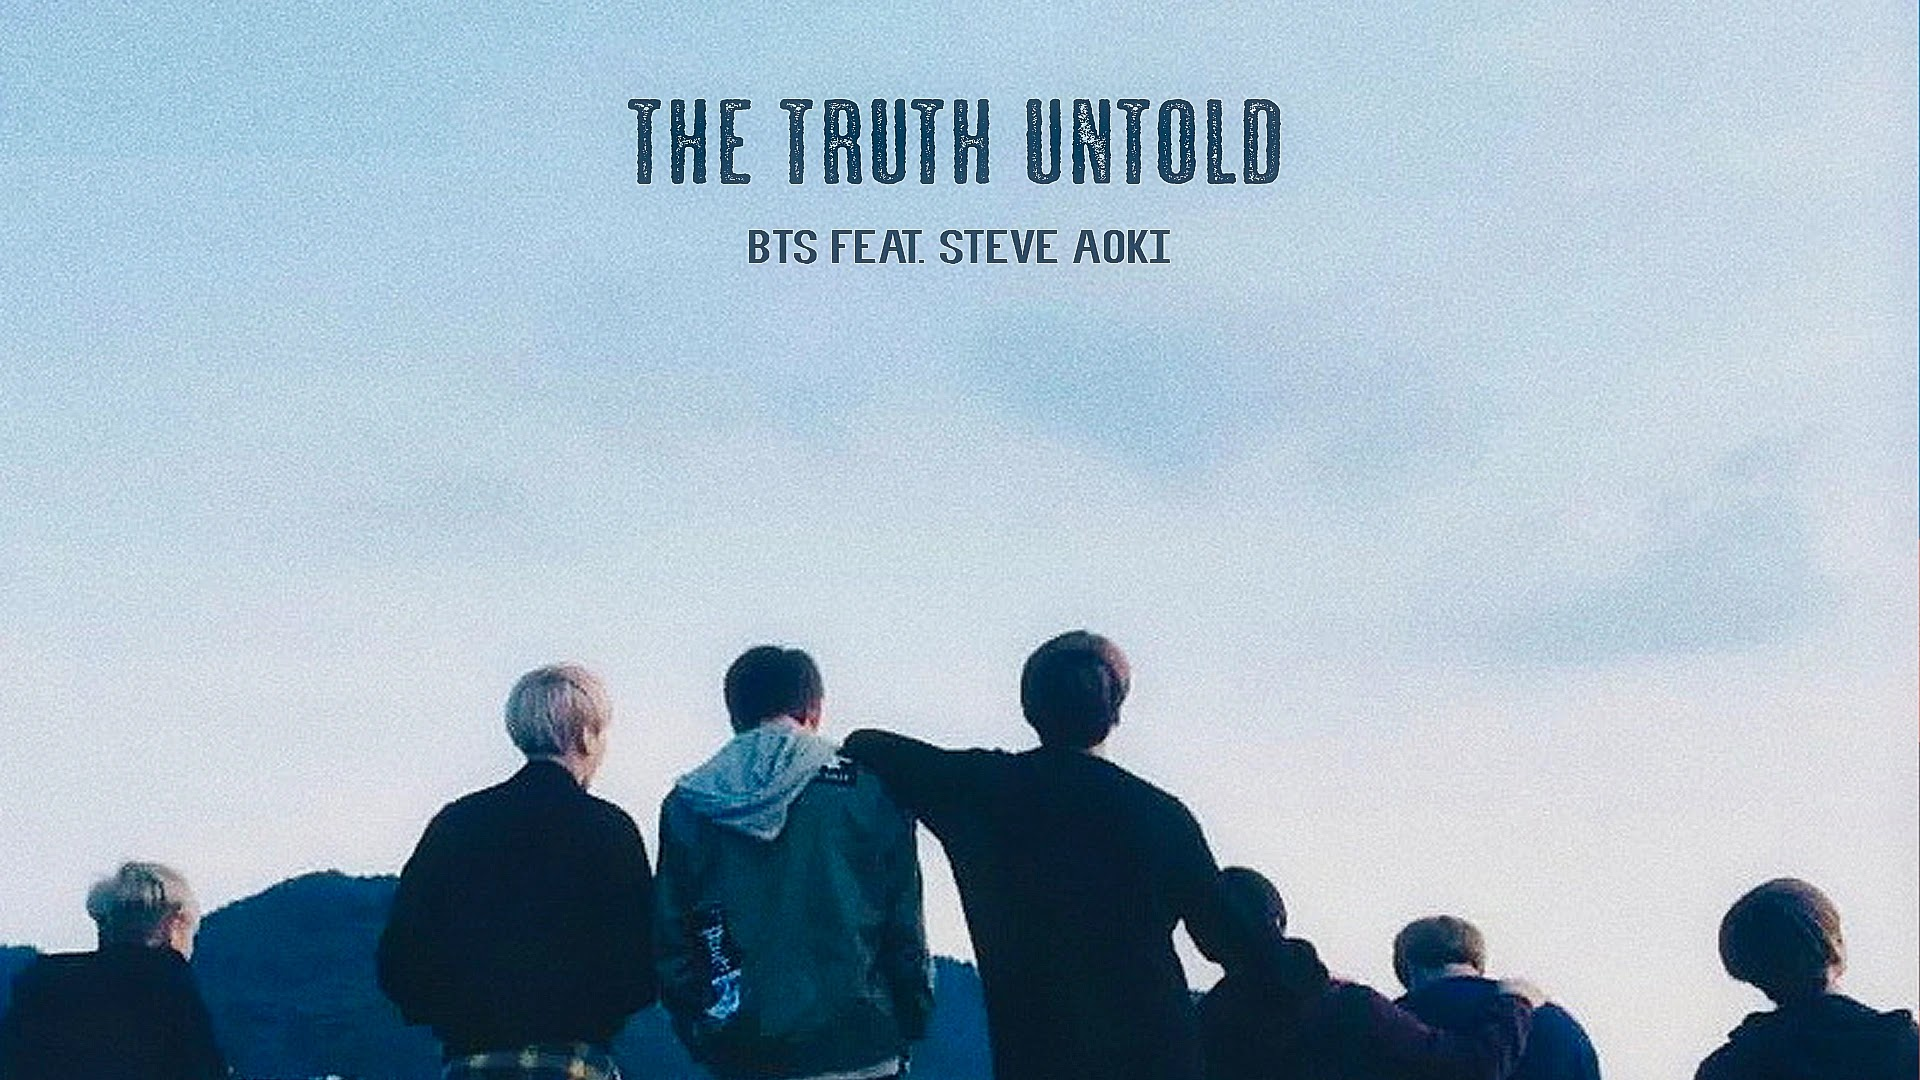 The Truth Untold - BTS (feat. Steve Aoki)